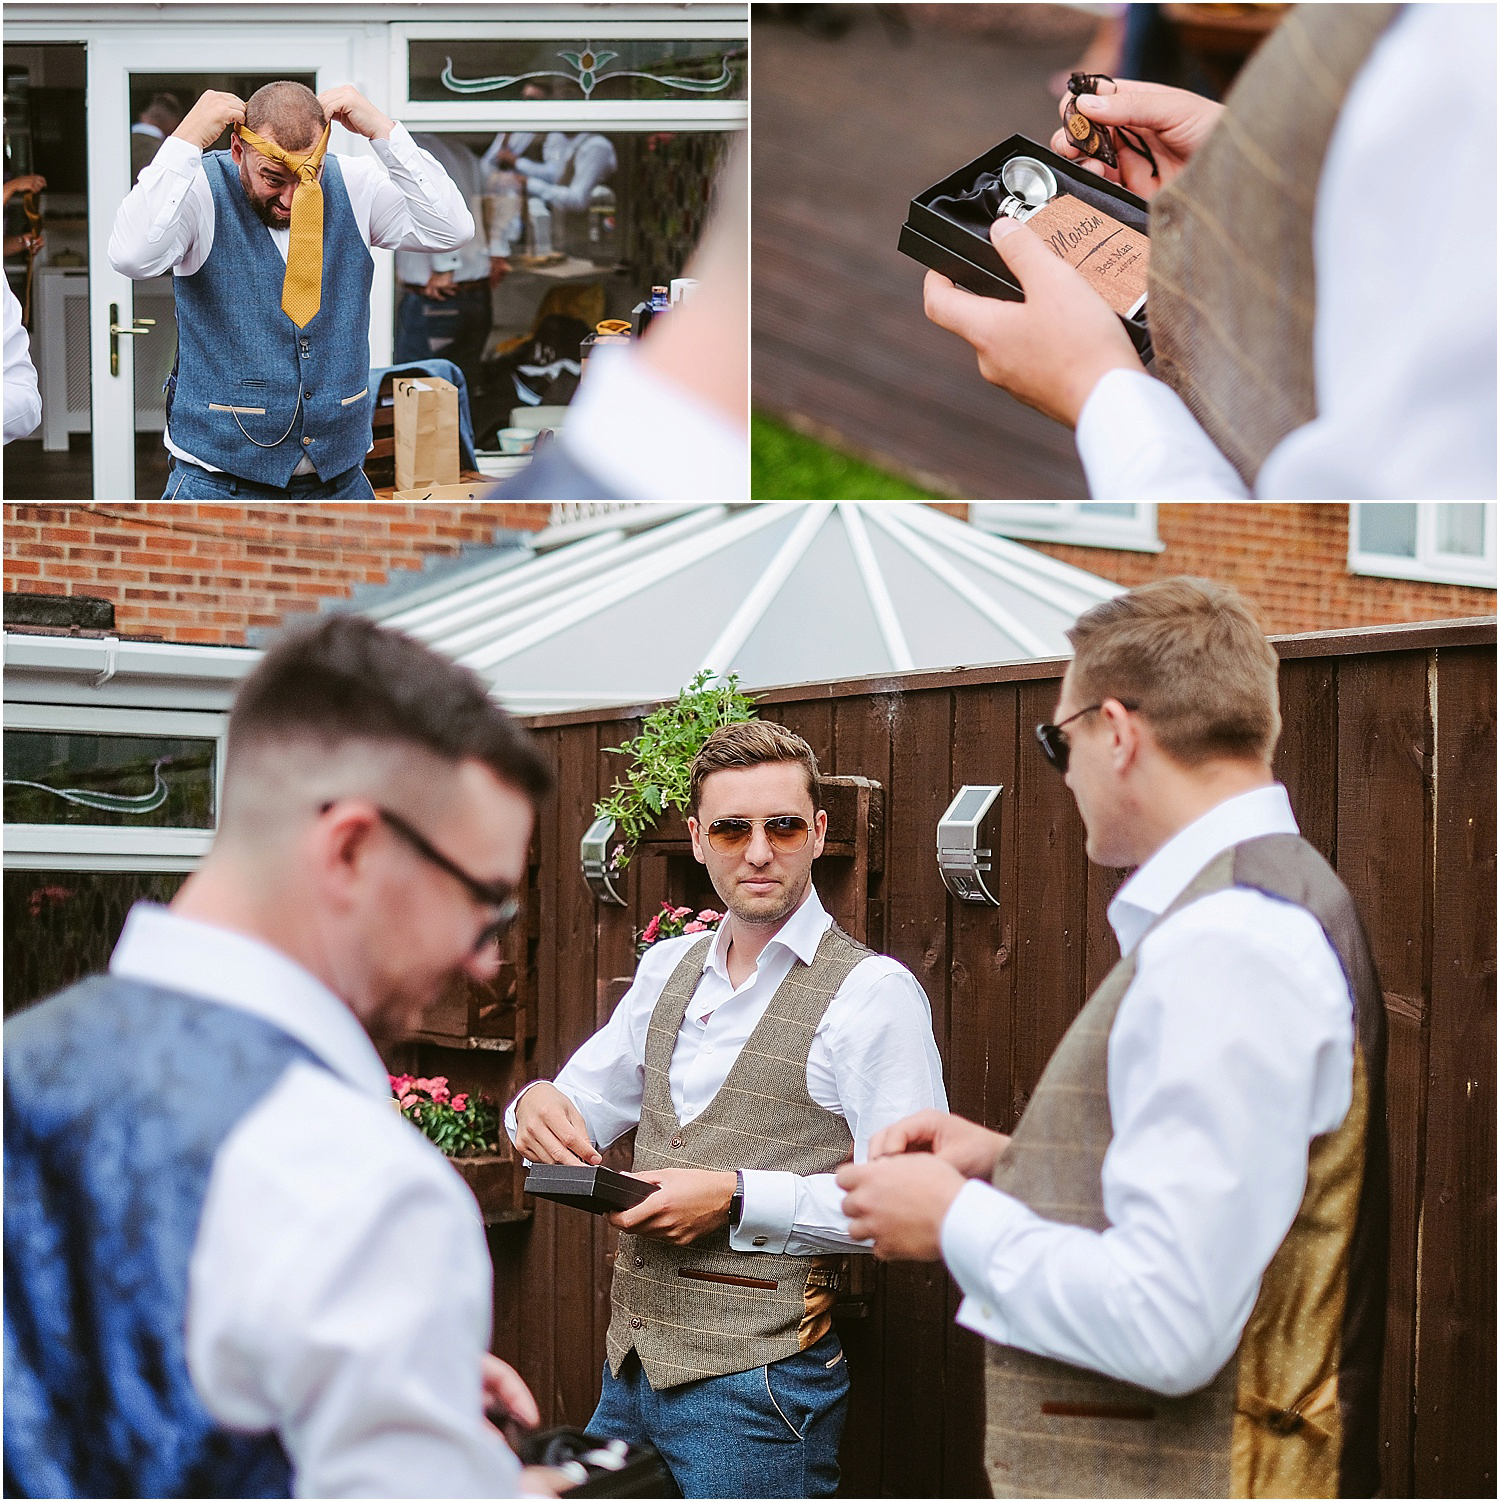 Wedding at Healey Barn - wedding photography by www.2tonephotography.co.uk 022.jpg